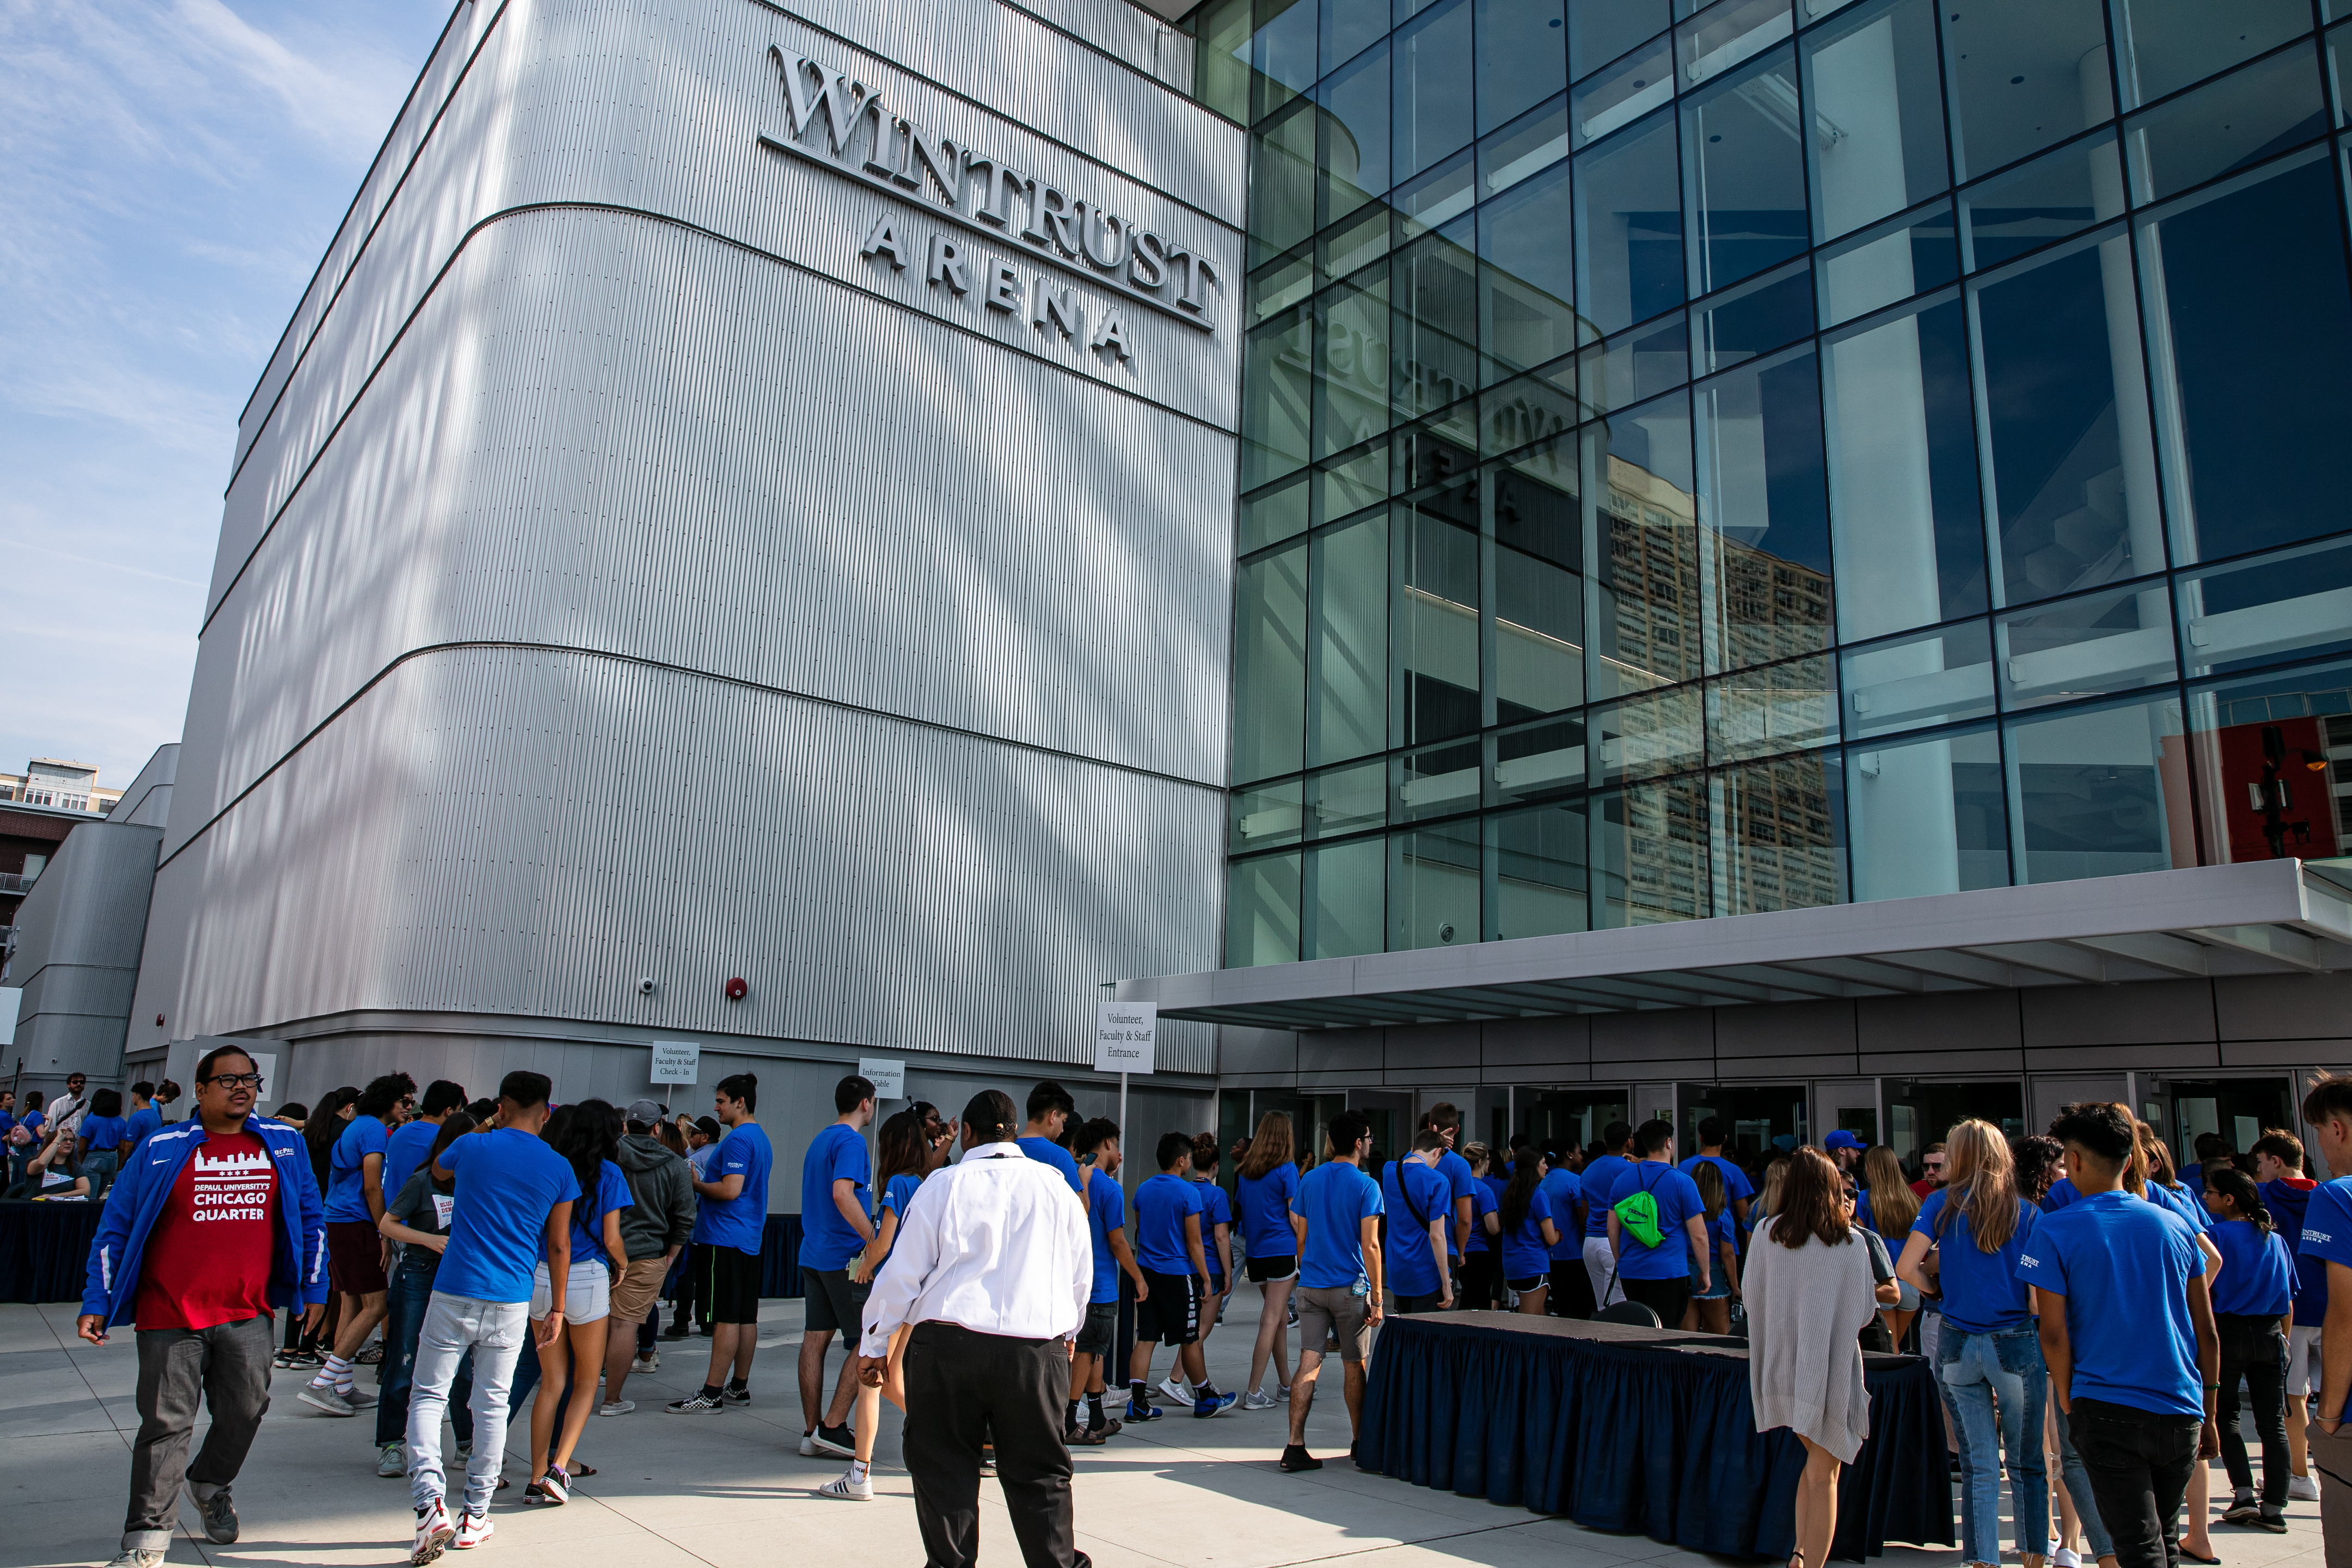 New DePaul students, faculty and staff in Discover and Explore Chicago classes, and faculty, staff and student volunteers file into Wintrust Arena for the new student convocation, Tuesday, Sept. 10th, 2019. (DePaul University/Randall Spriggs)